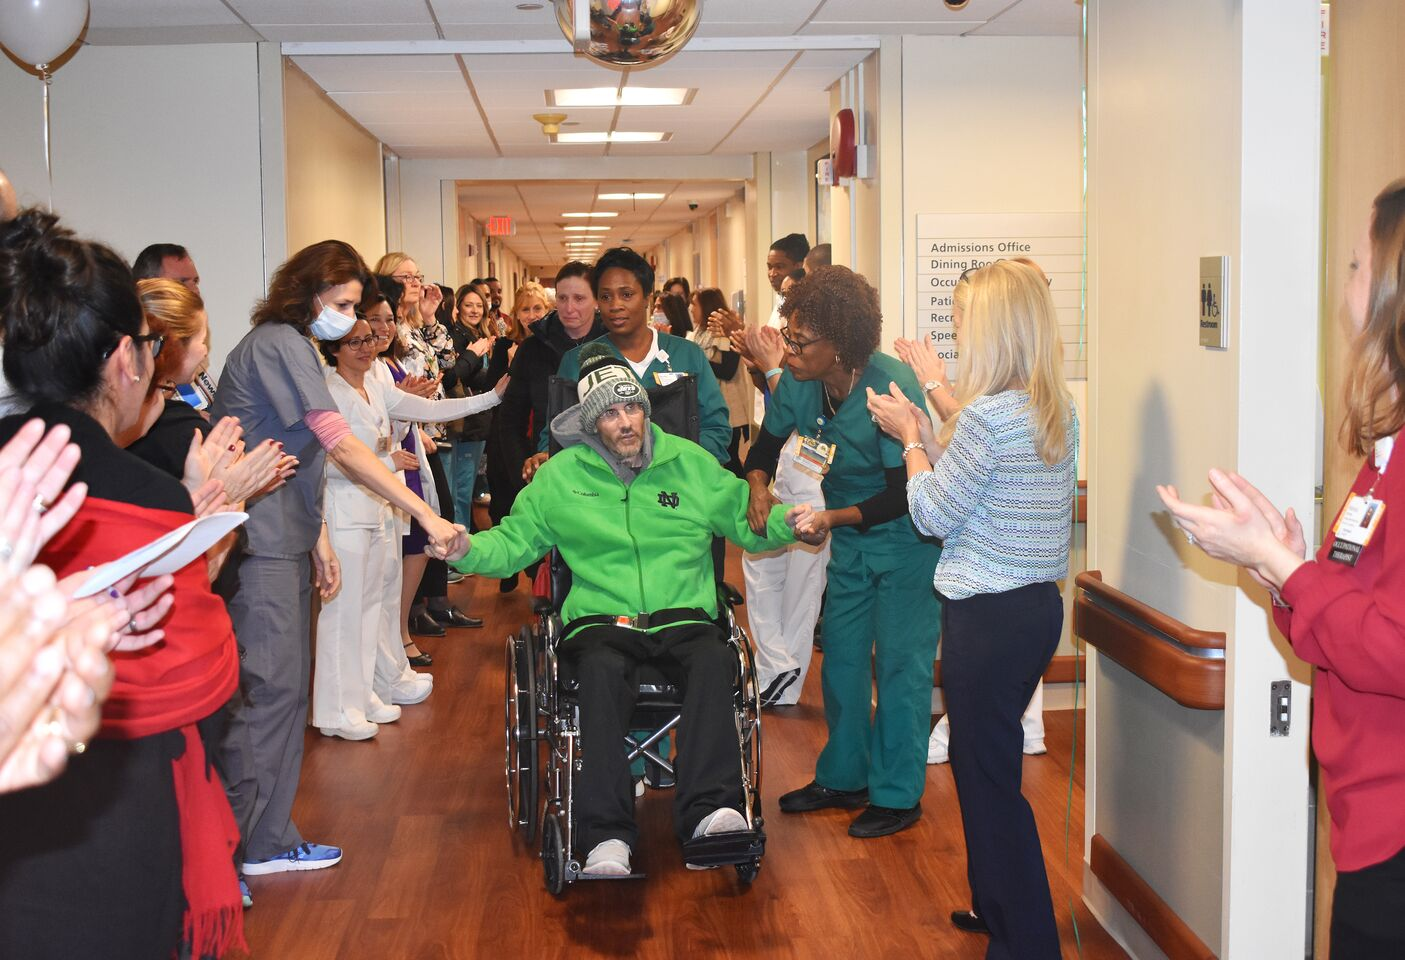 Matthew Malley is pushed in a wheelchair down a hospital hallway, surrounded by staff clapping, cheering, and offering sentiments of support.